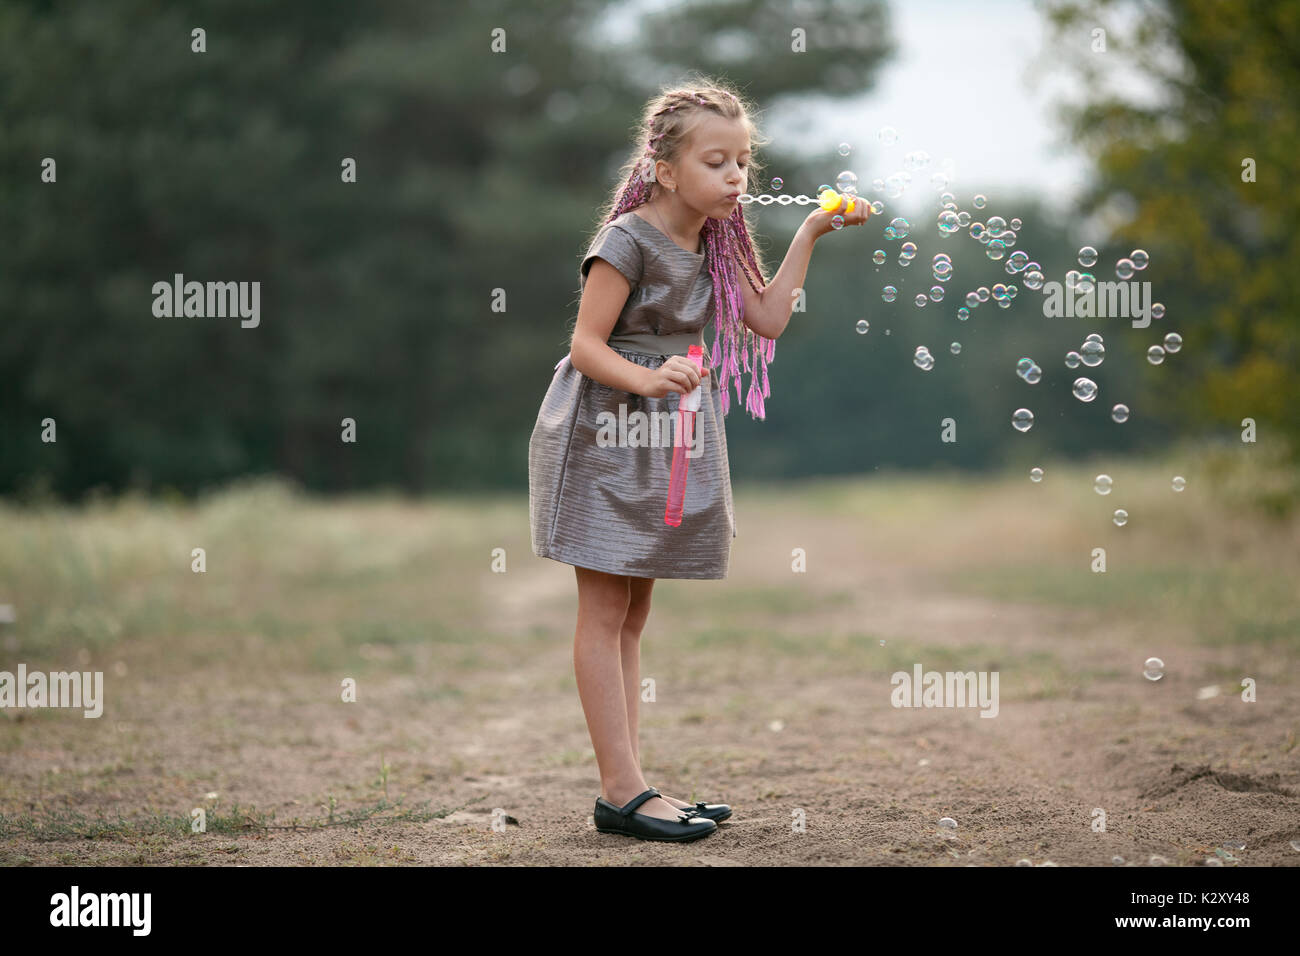 Happy child girl with pigtails blowing soap bubbles on walk in park. - Stock Image